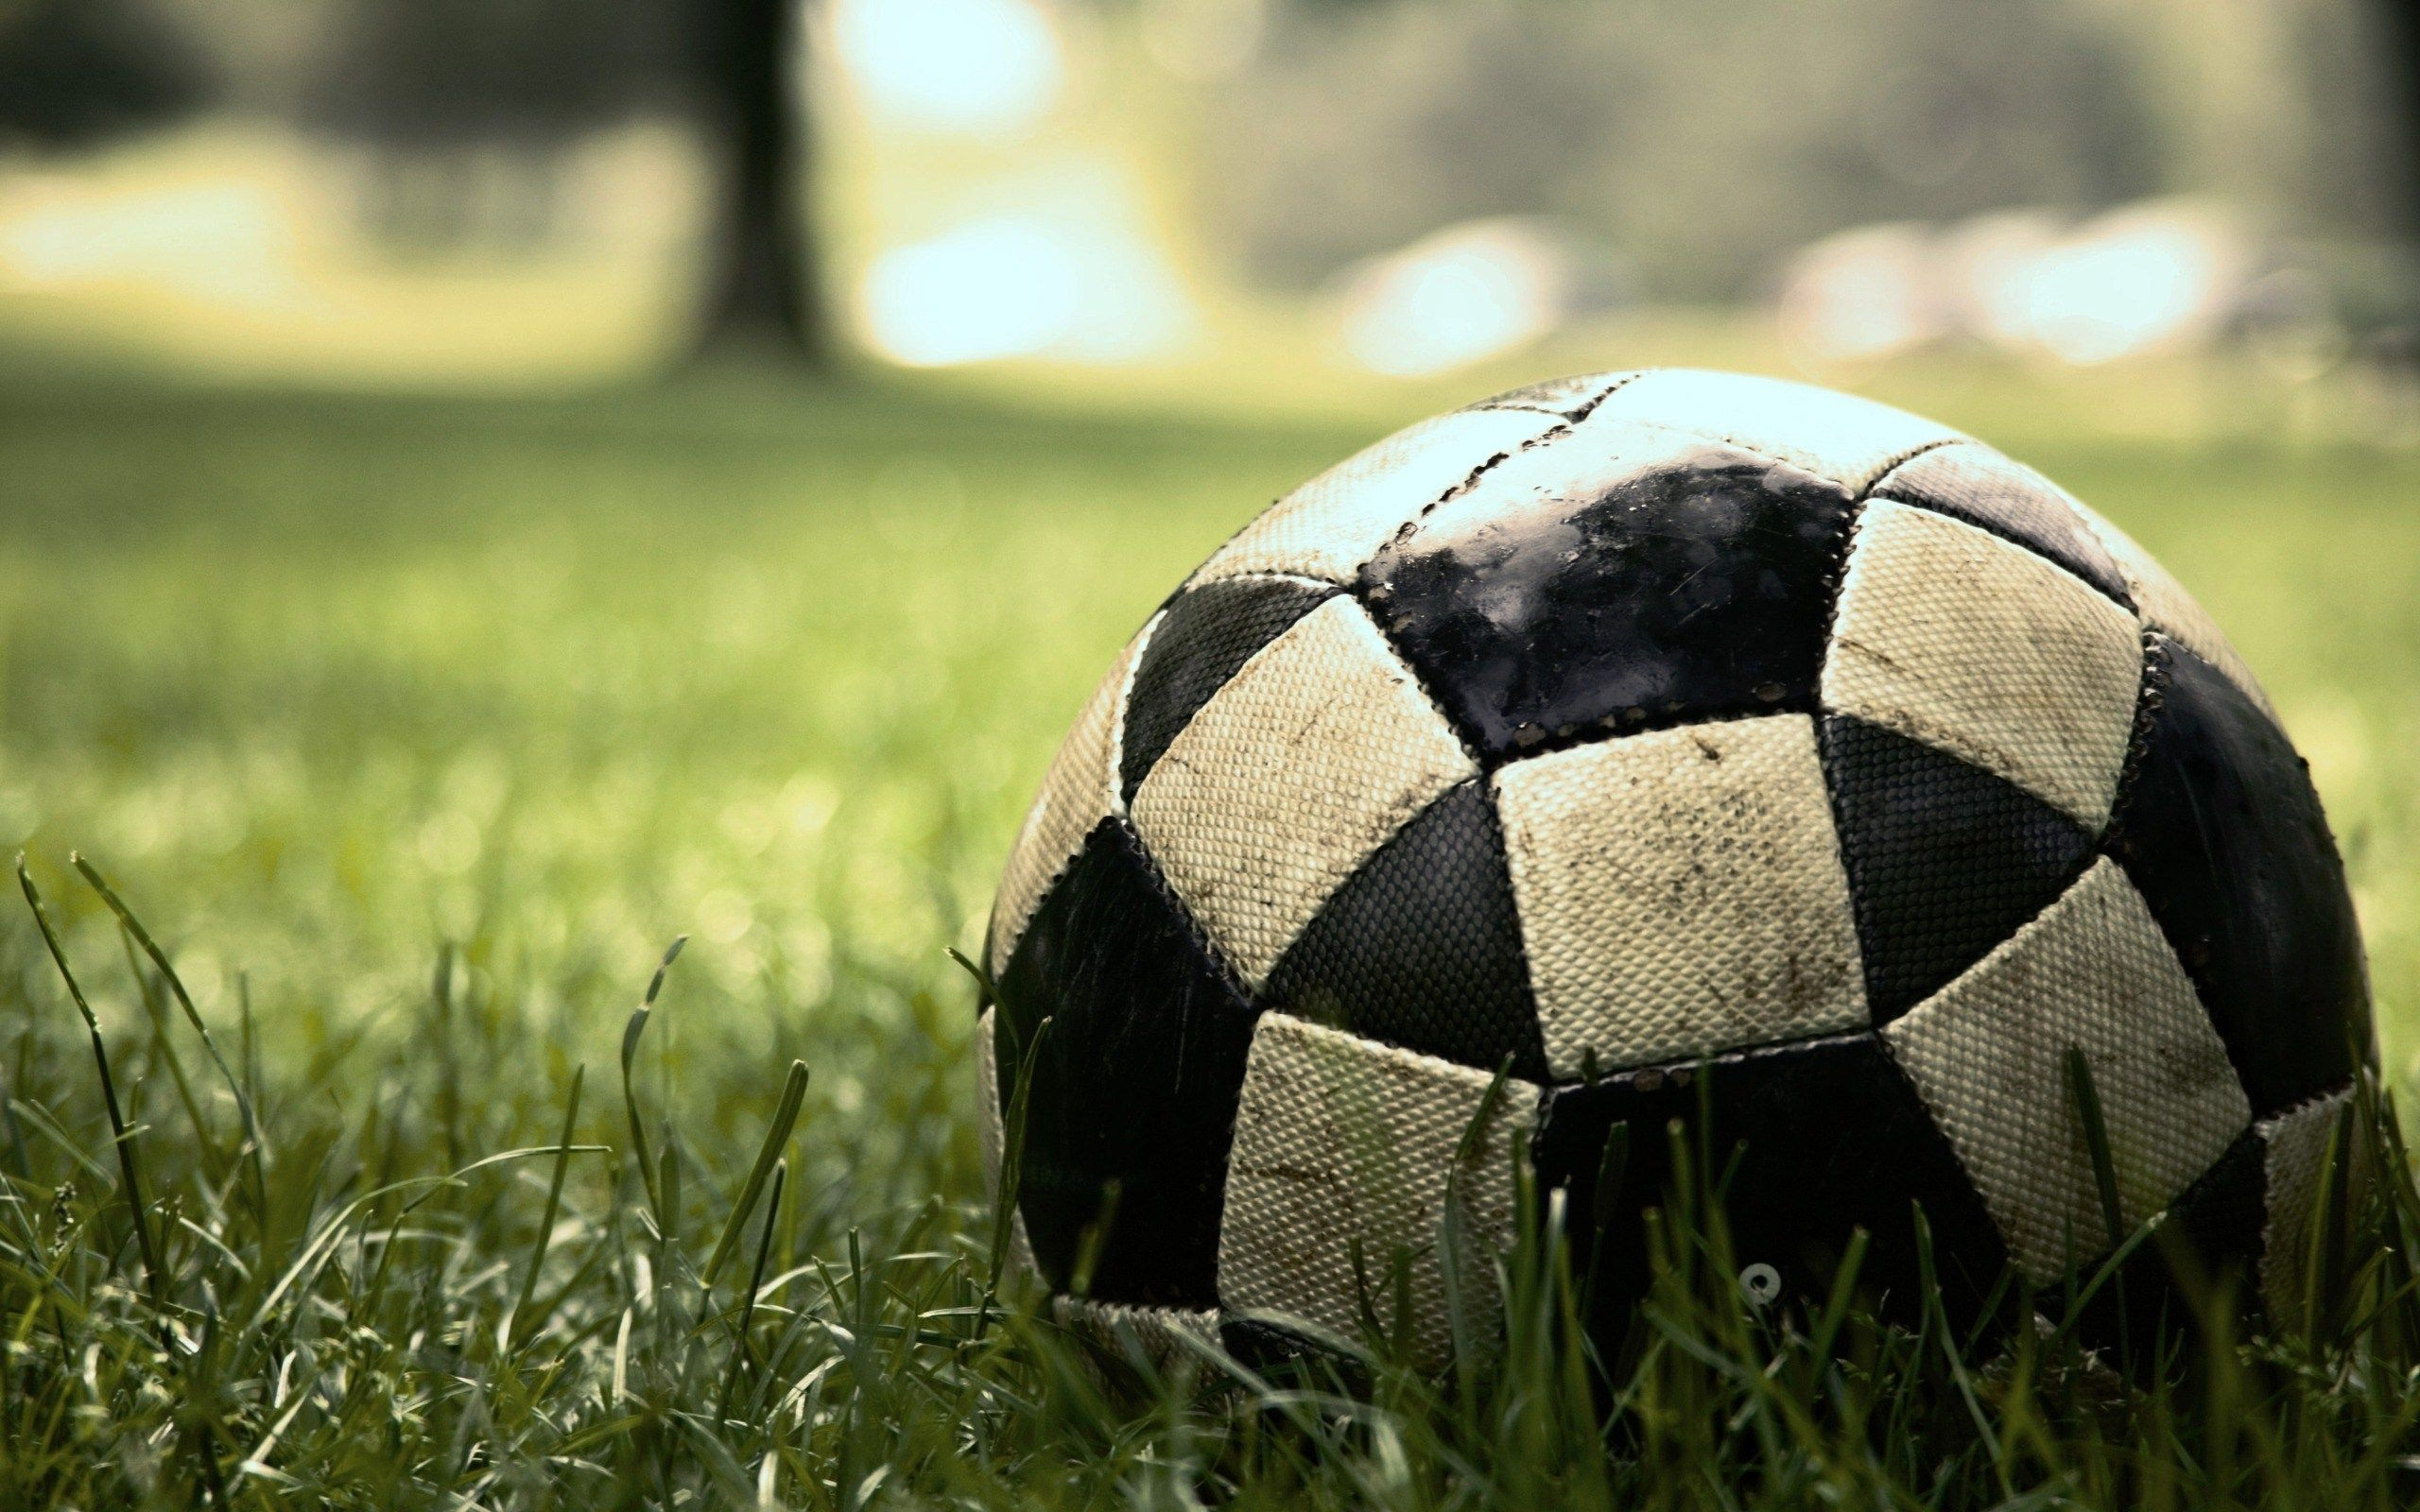 Pictureoftheday Photography Grass Ball Soccer Game Sport At Sevencentric Soccer Ball Soccer Football Wallpaper